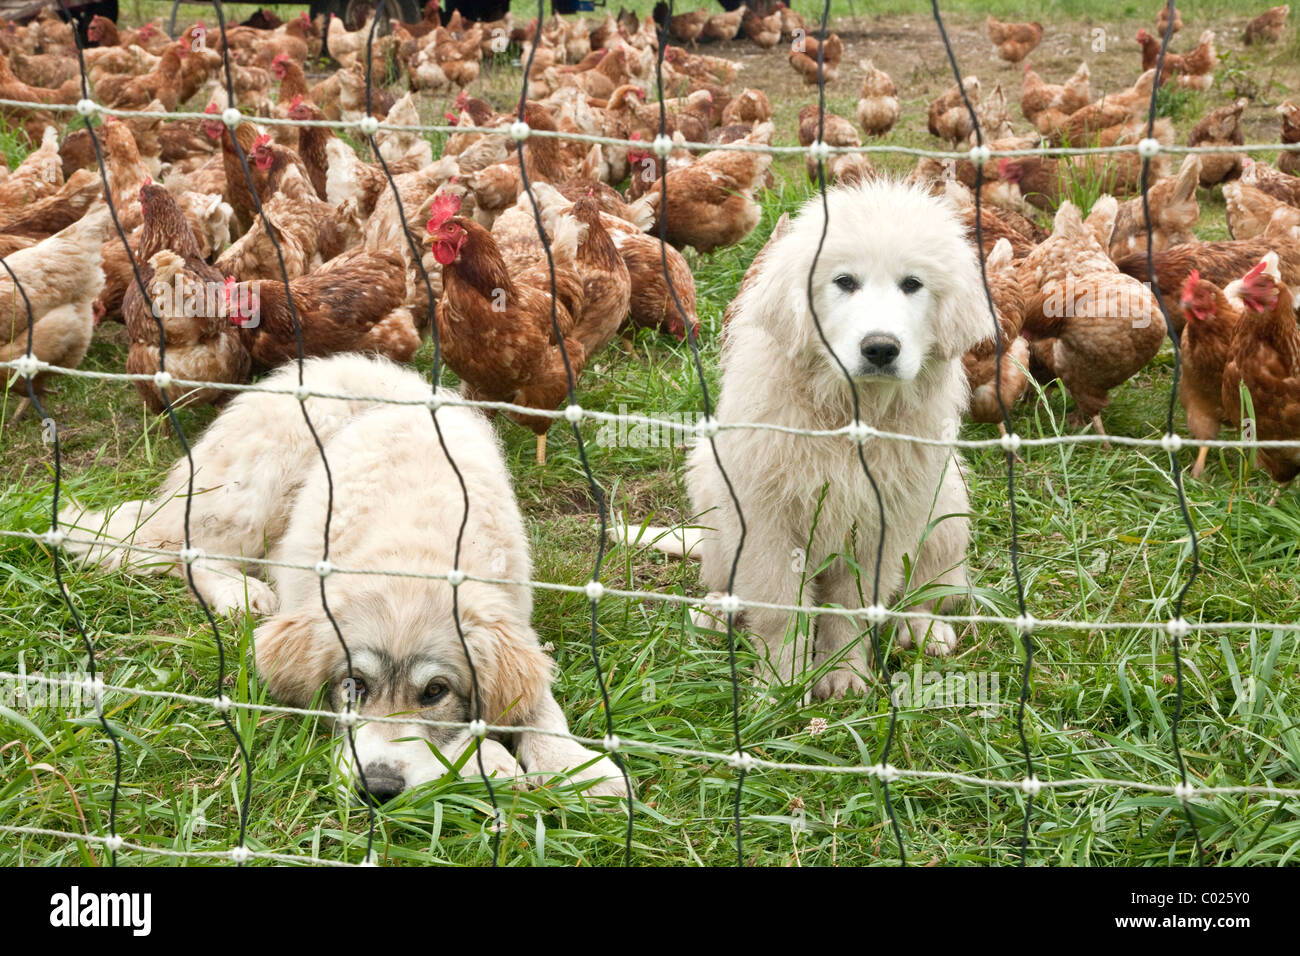 Great Pyrenees young pups, free range chickens, egg production. - Stock Image